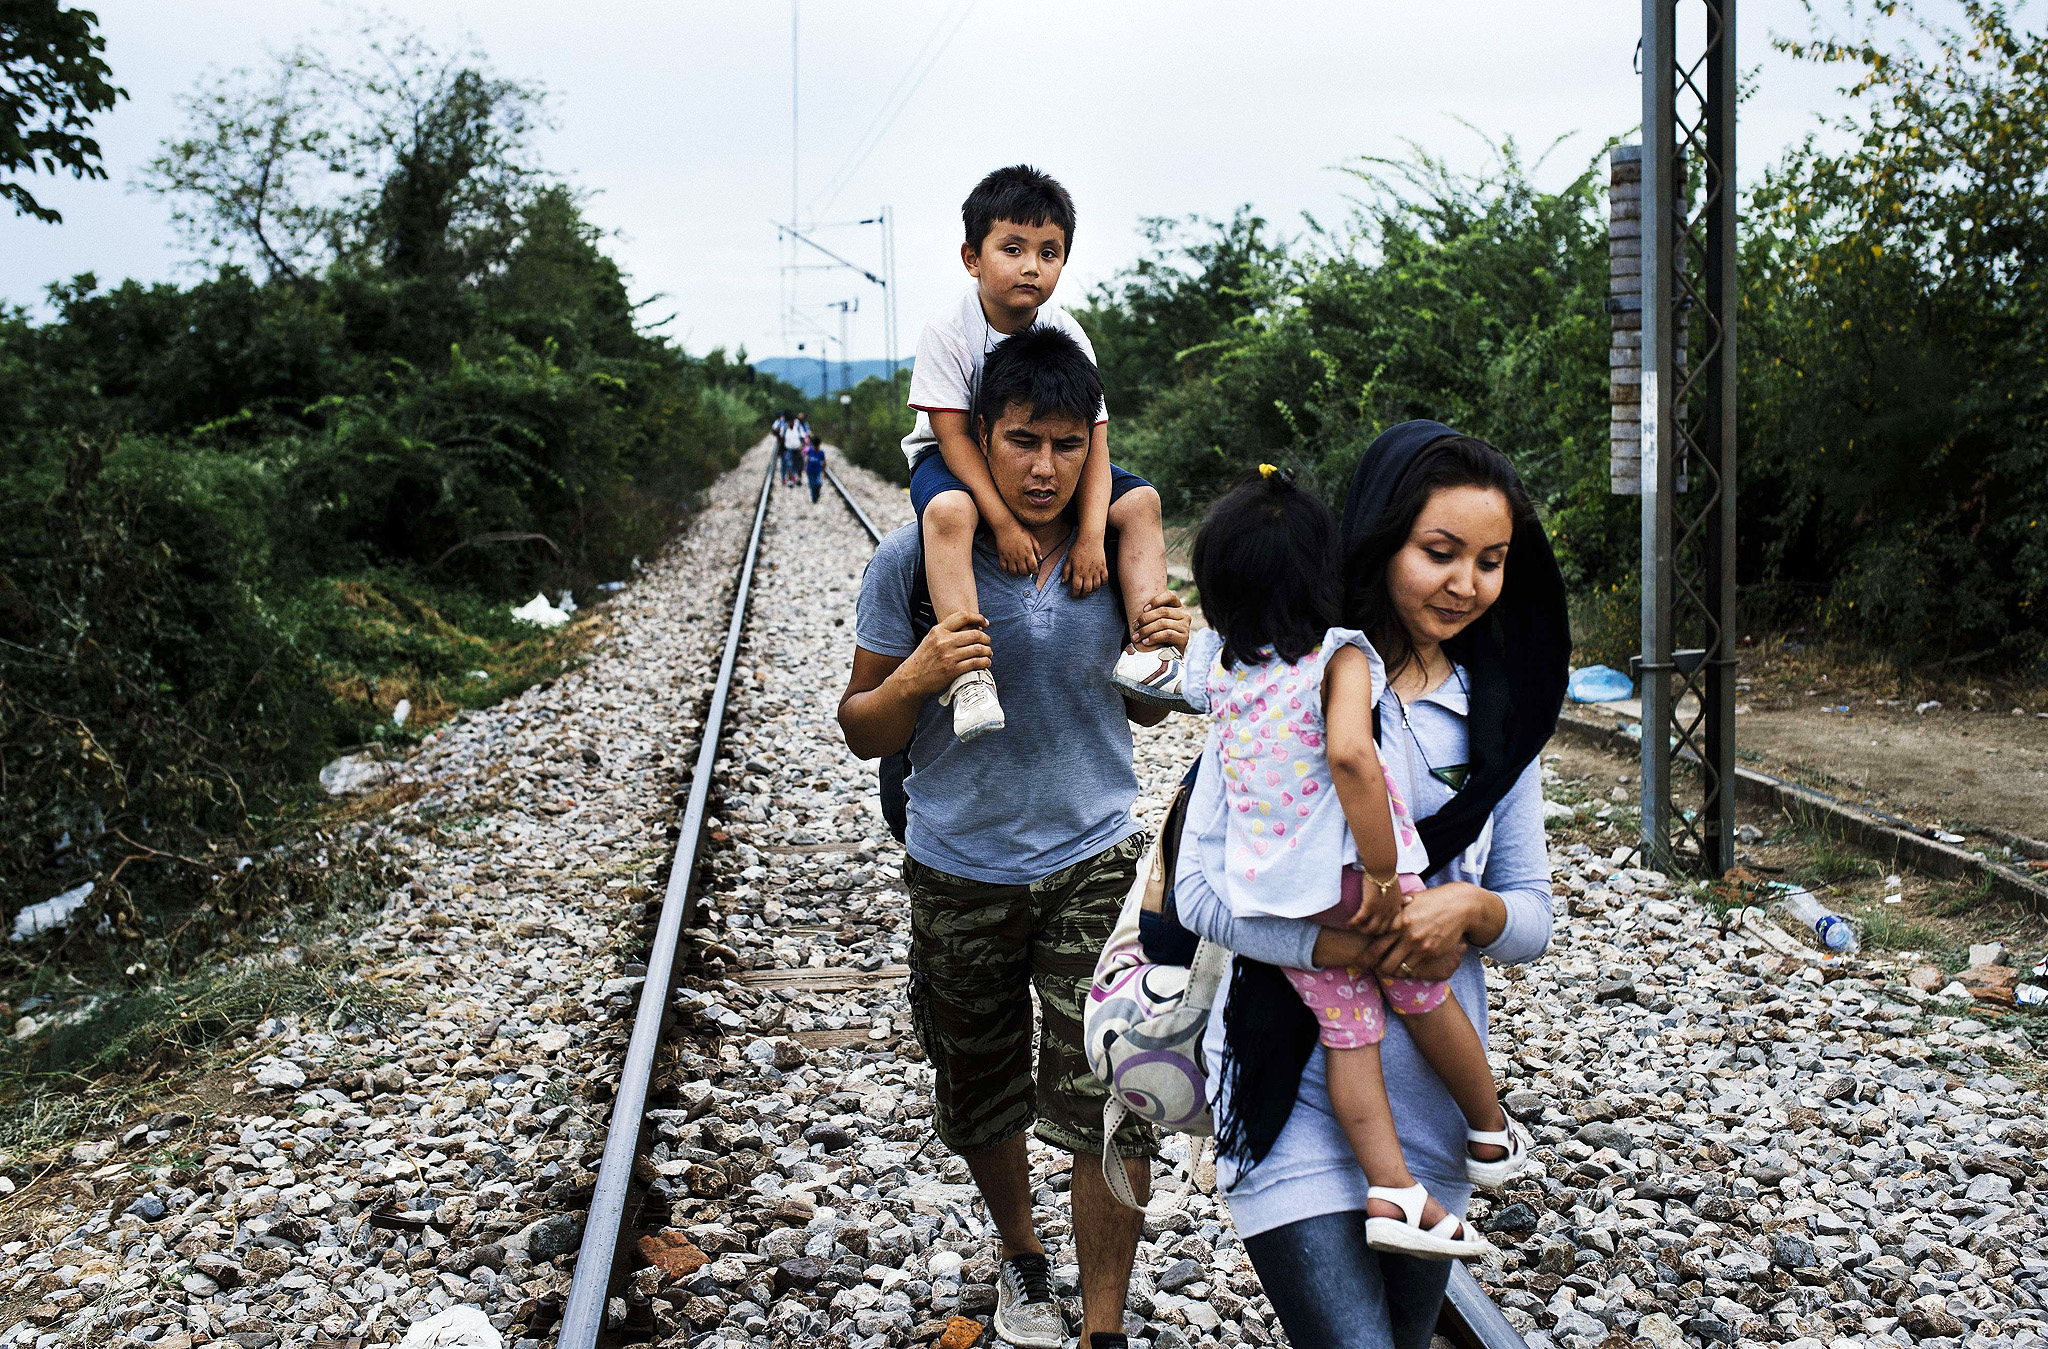 A migrant family walks on train tracks towards the town of Gevgelija, on the Macedonian-Greek border, on August 6, 2015. Many migrants try to cross Macedonia and Serbia to enter the European Union via Hungary, a country that will finish building its anti-migrant fence on its southern border with Serbia by August 31, ahead of a previous November deadline